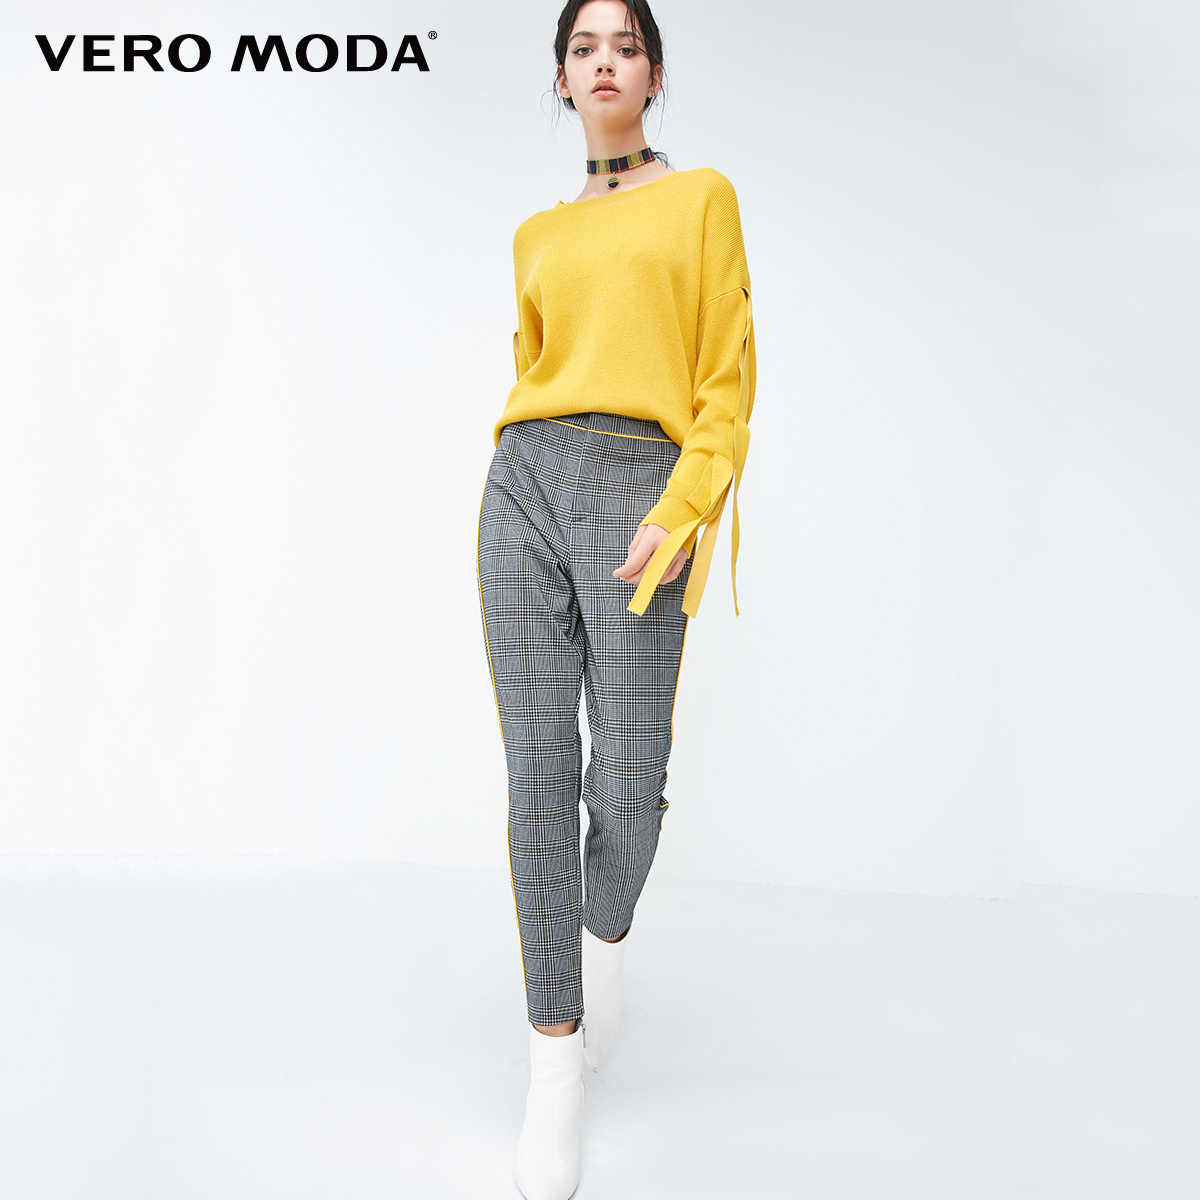 Vero Moda 2019 New Arrivals Houndstooth Pattern Selvaged Slim Fit Casual Pants | 318365504